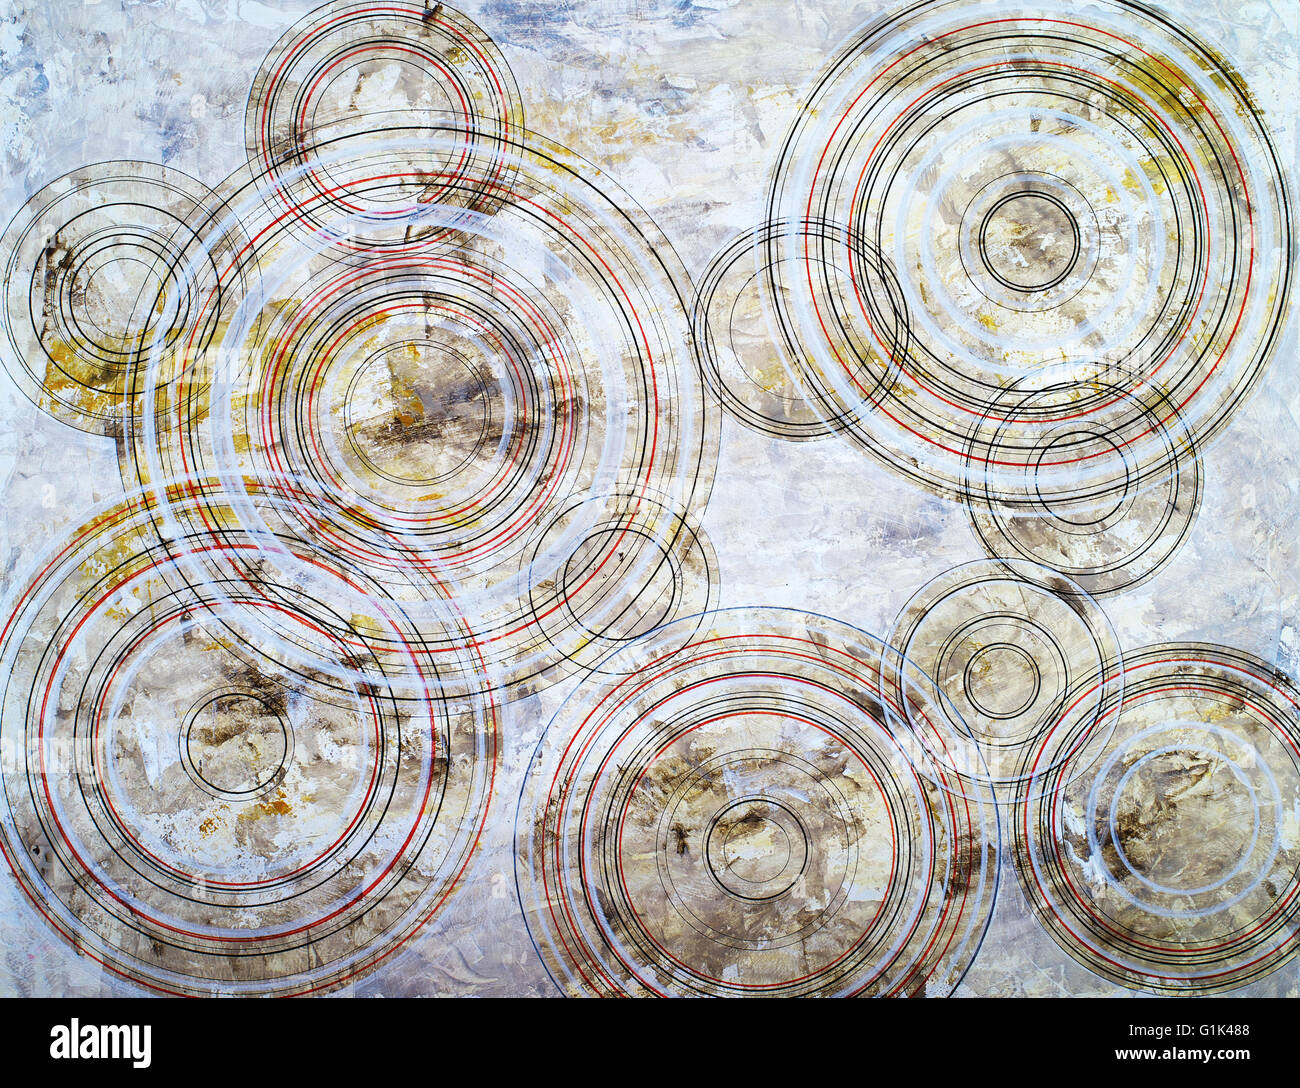 an abstract painting; concentric circles on a grunge background - Stock Image